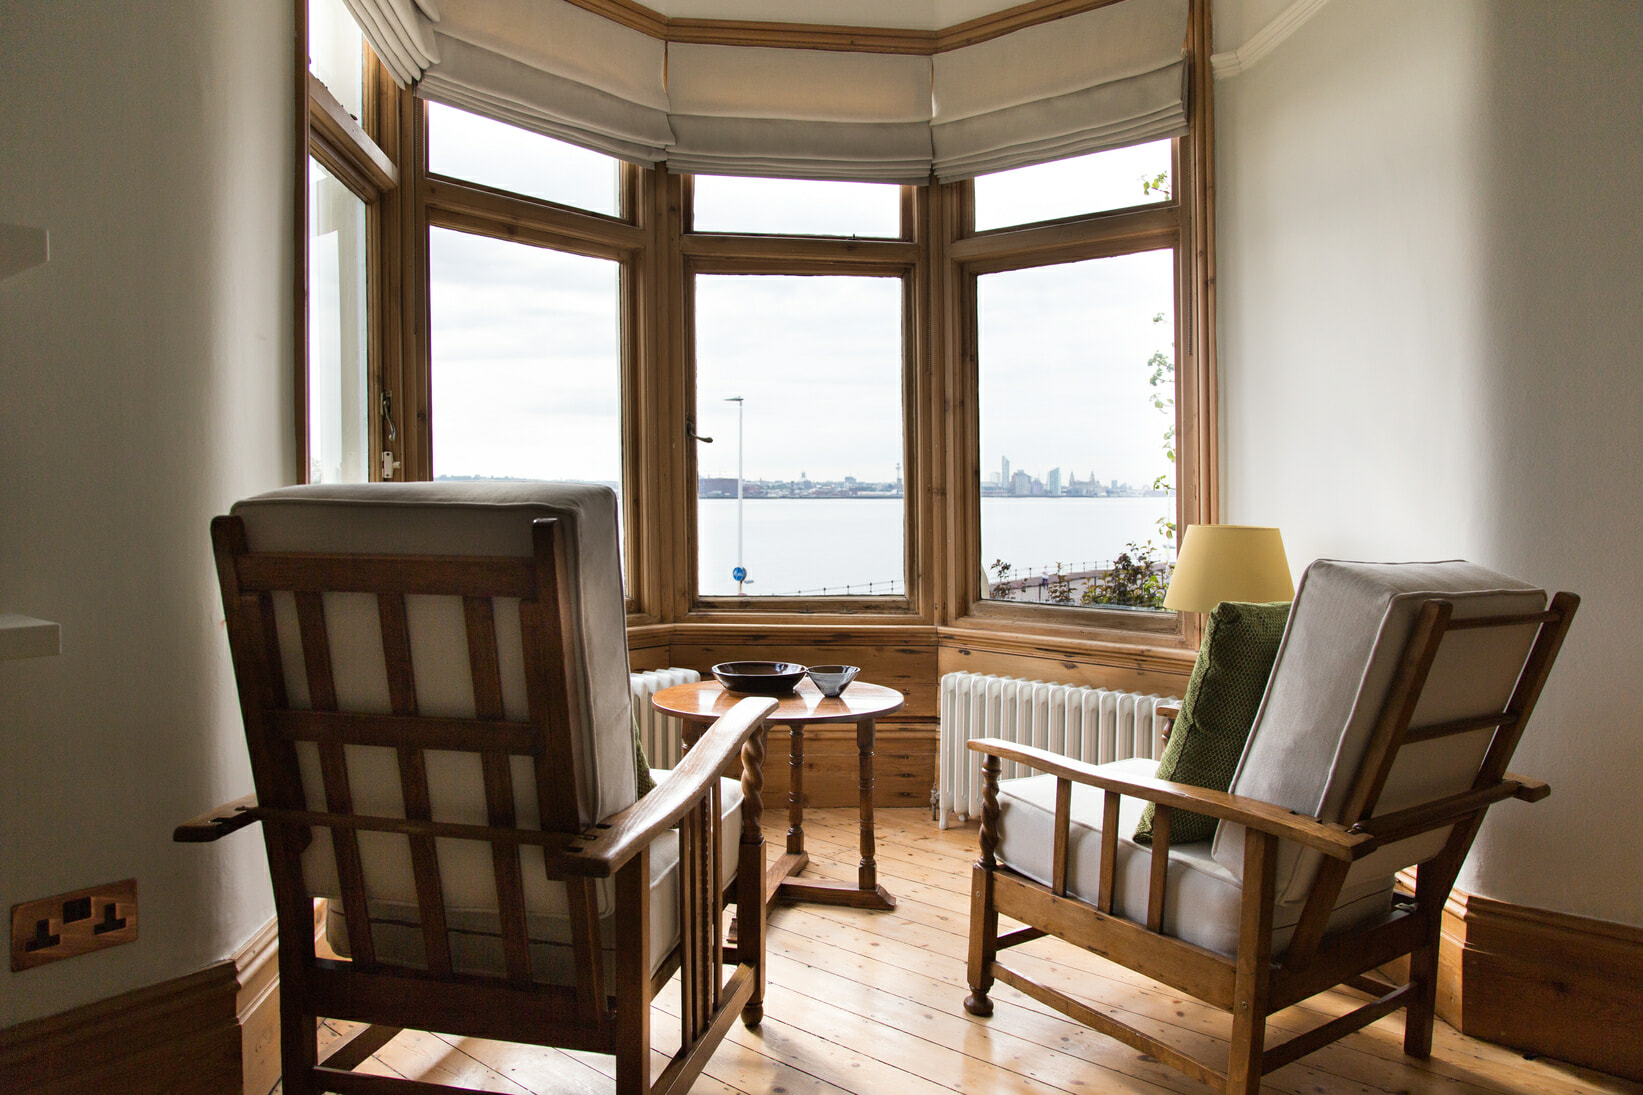 bay window with two chairs